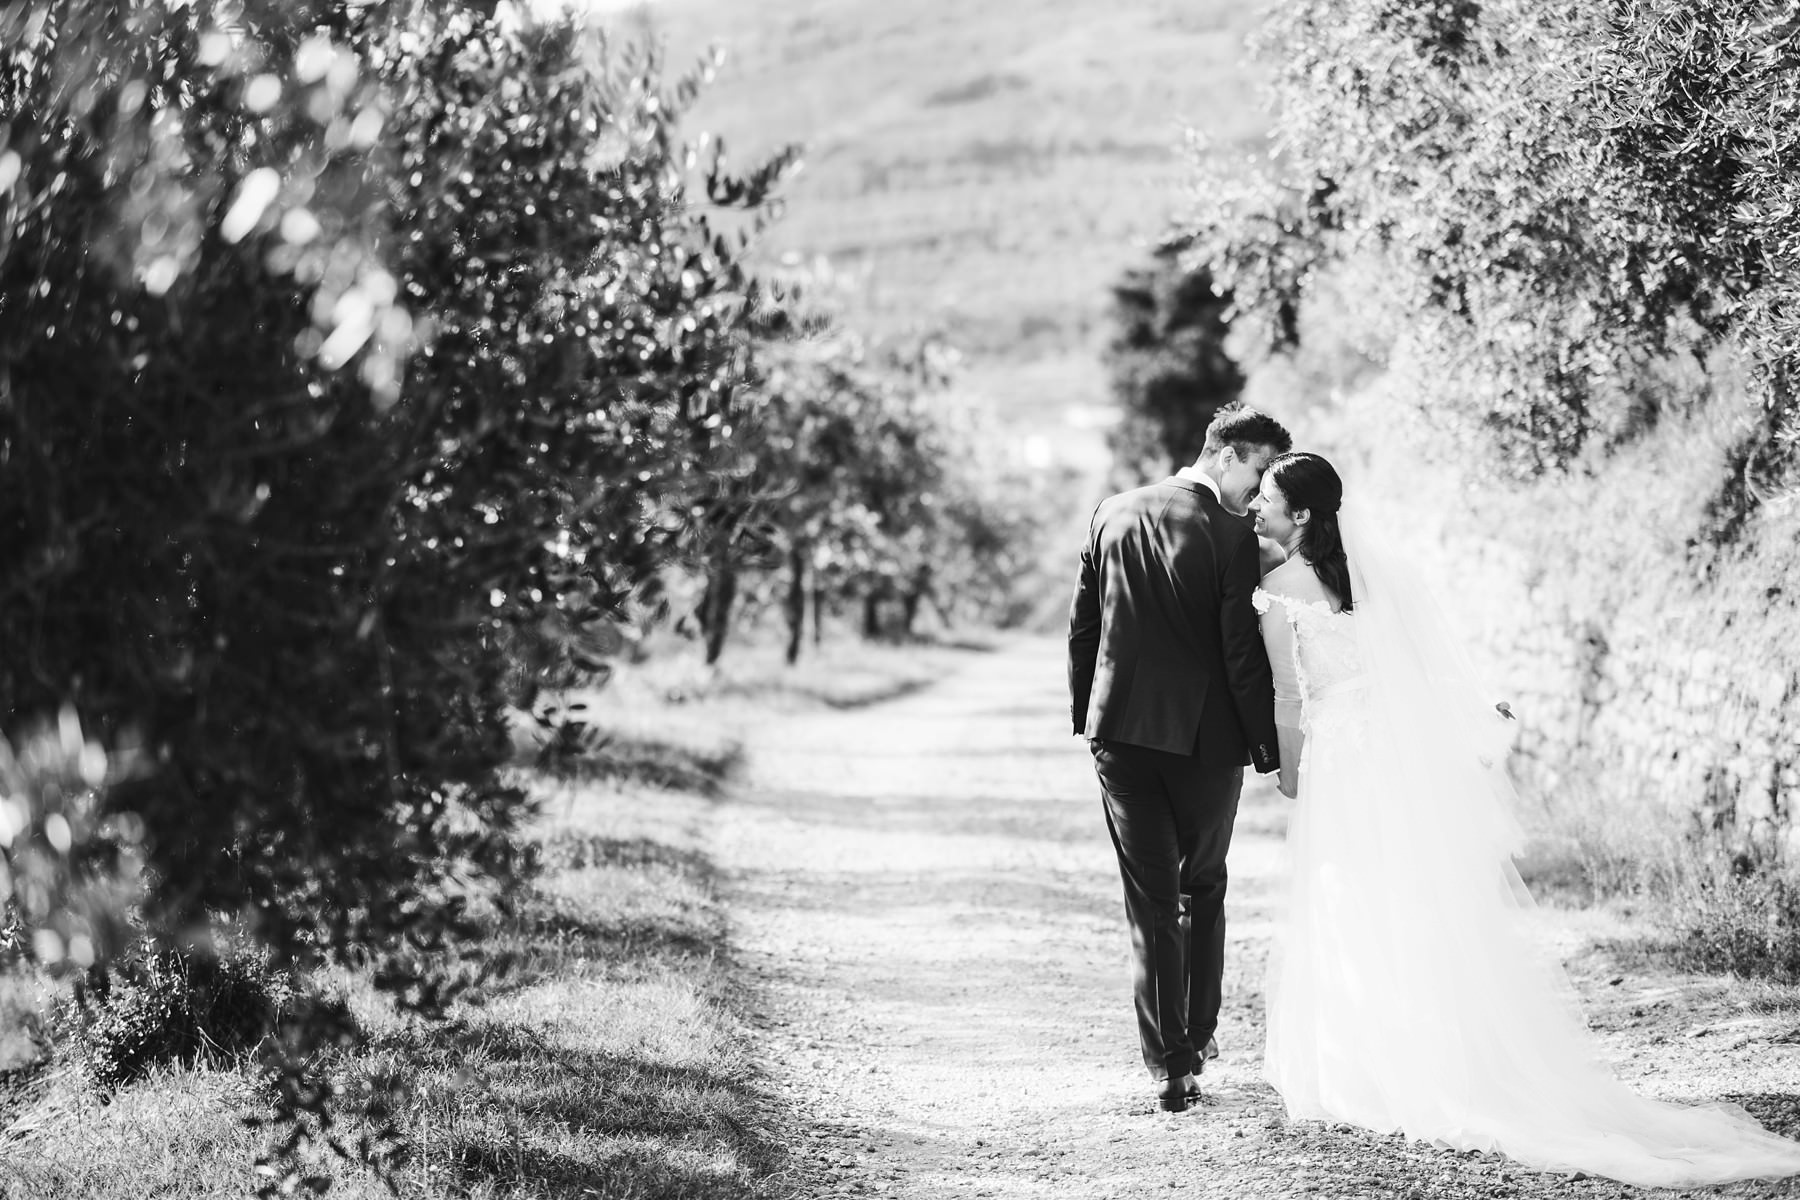 Elegant and classic bride and groom portrait in Tuscany countryside near Pieve di Gropina